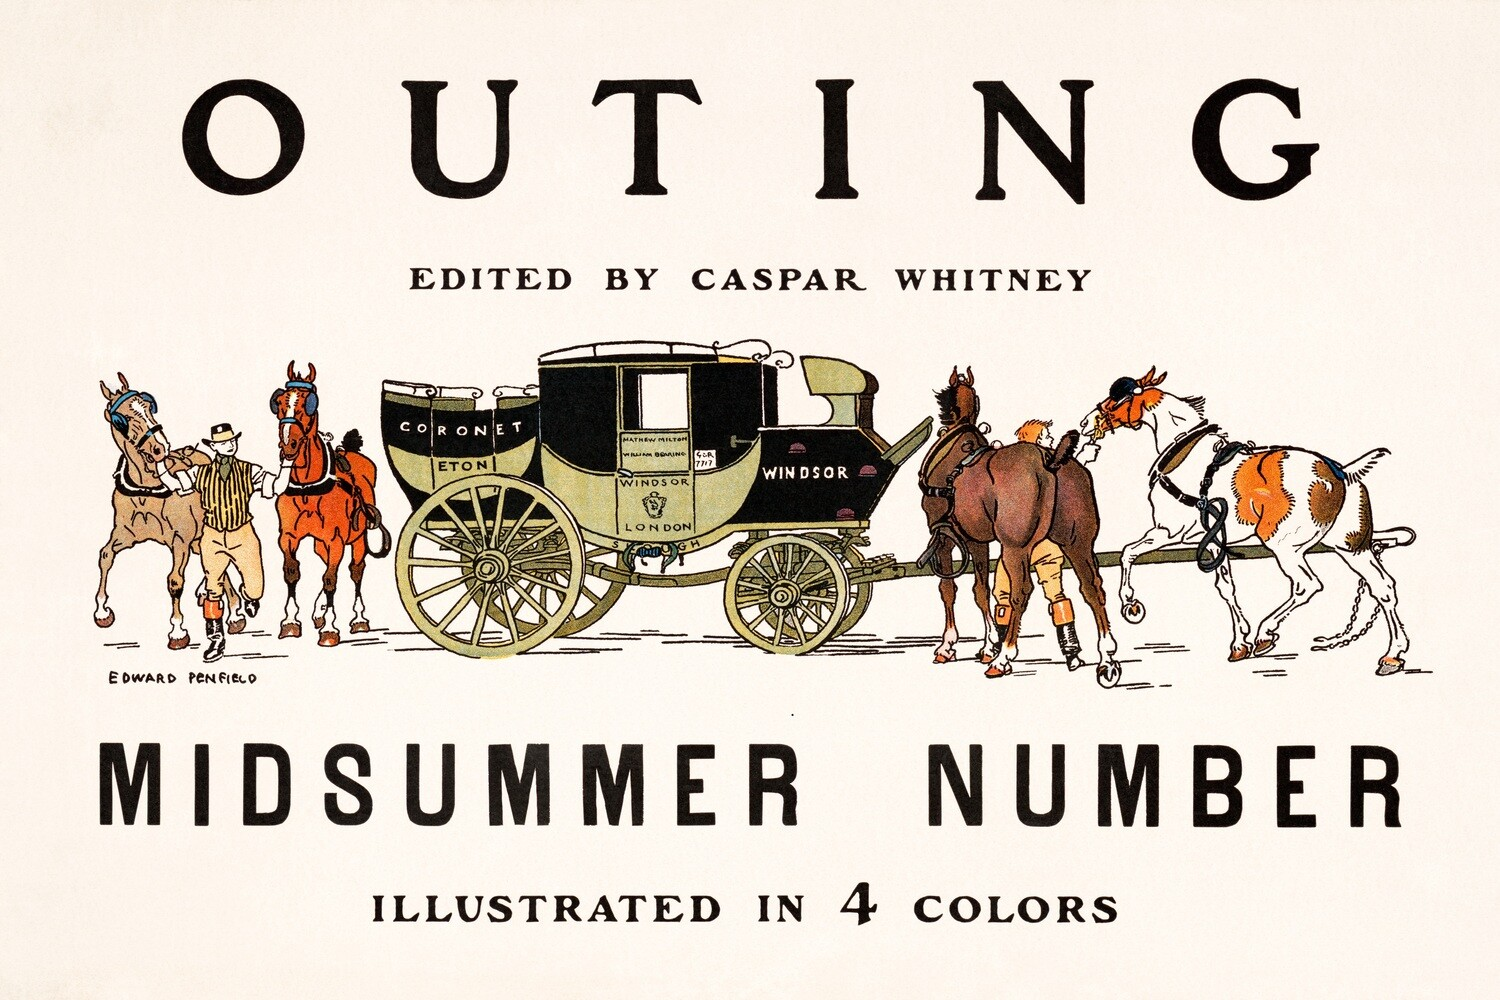 Edward Penfield | Outing edited by Caspar Whitney 1890-1900